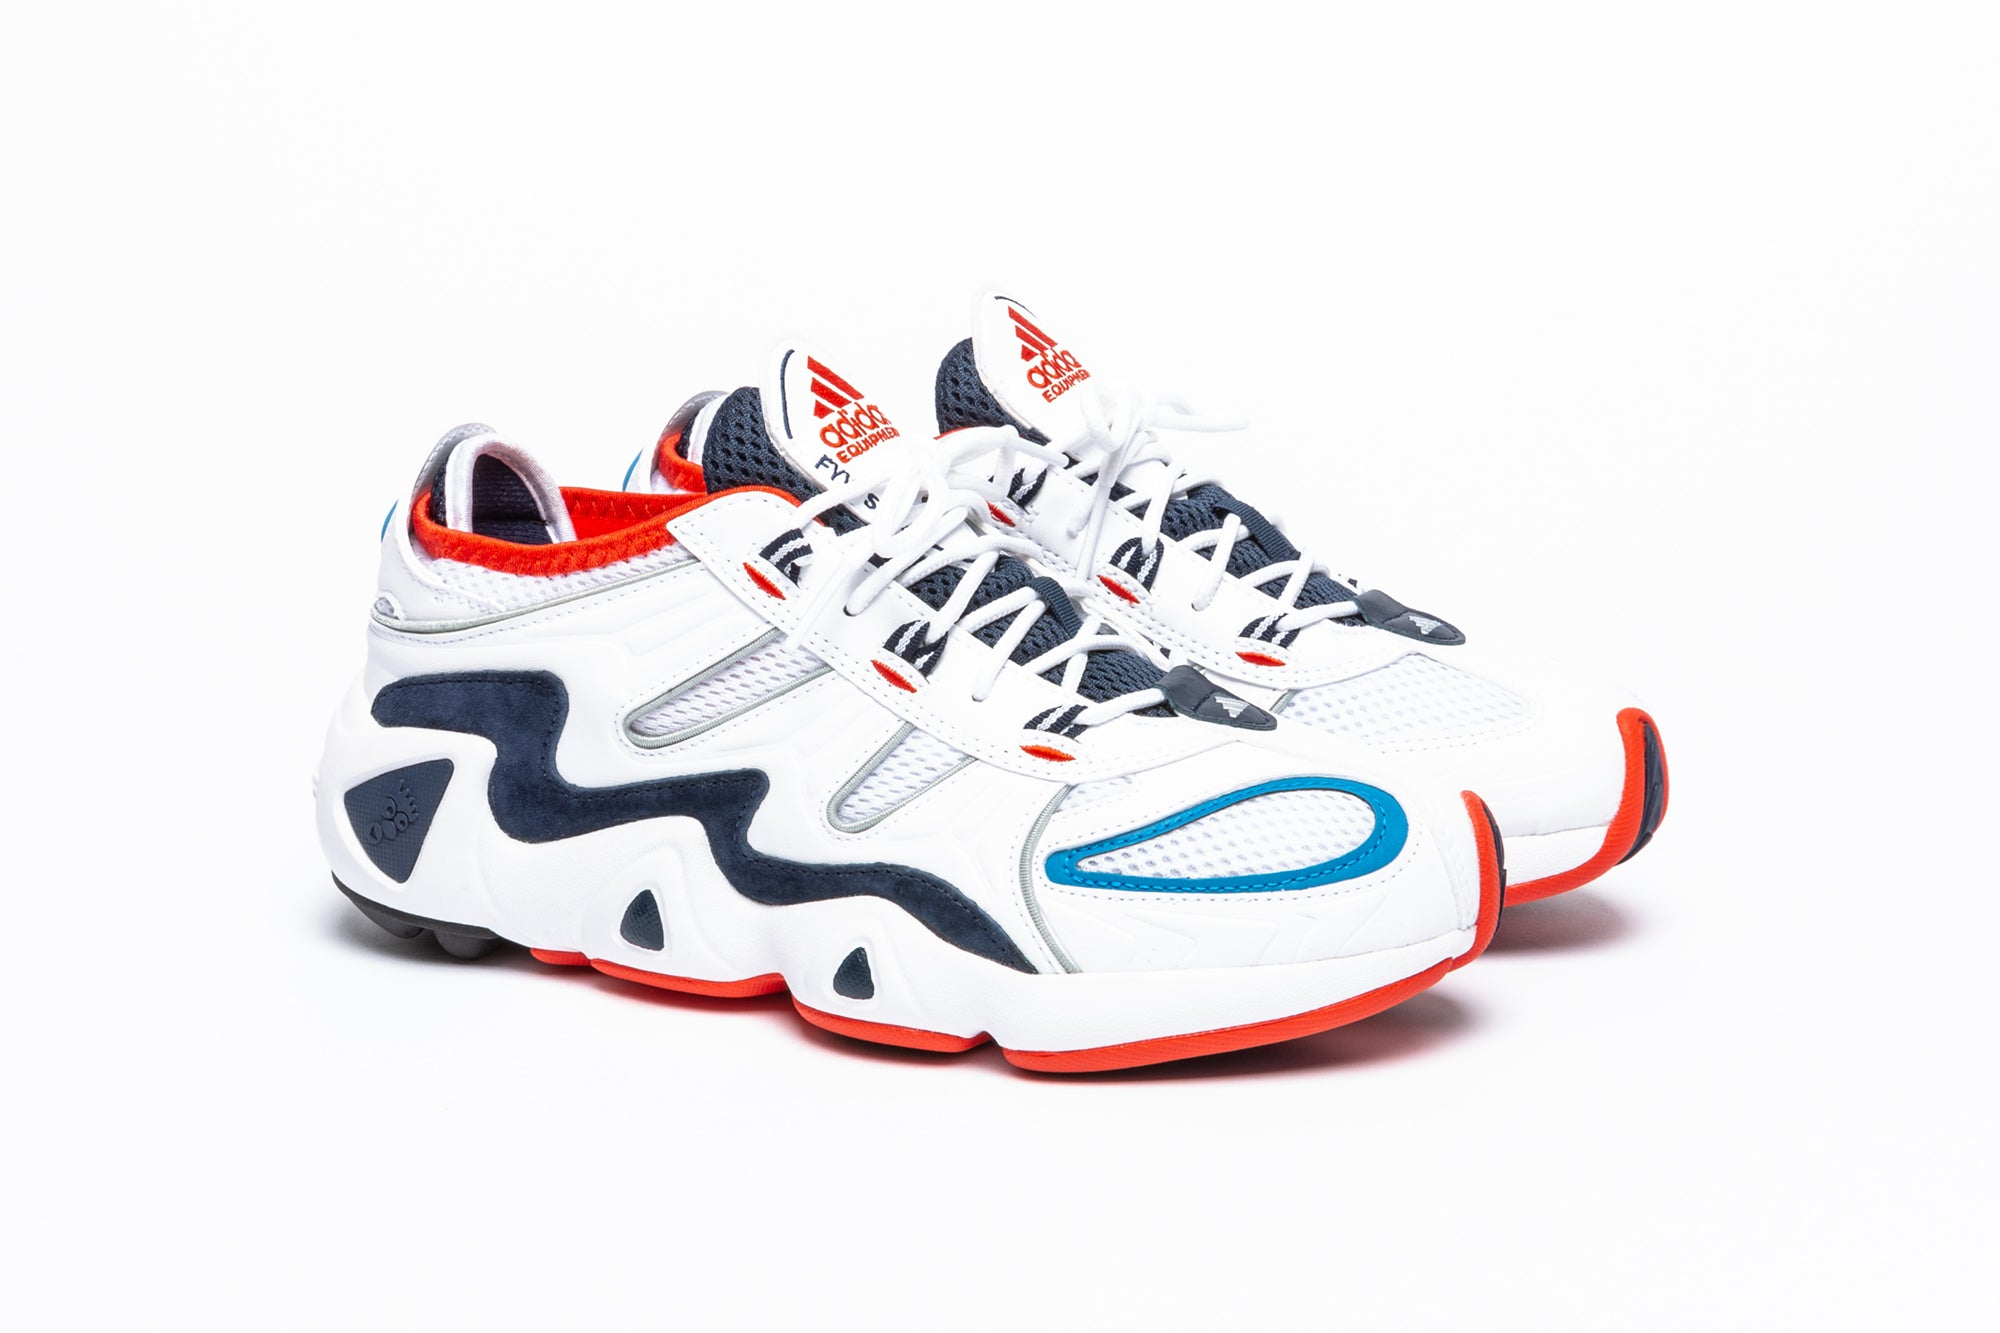 Adidas Consortium Goes Back To The 90s With The FYW S 97